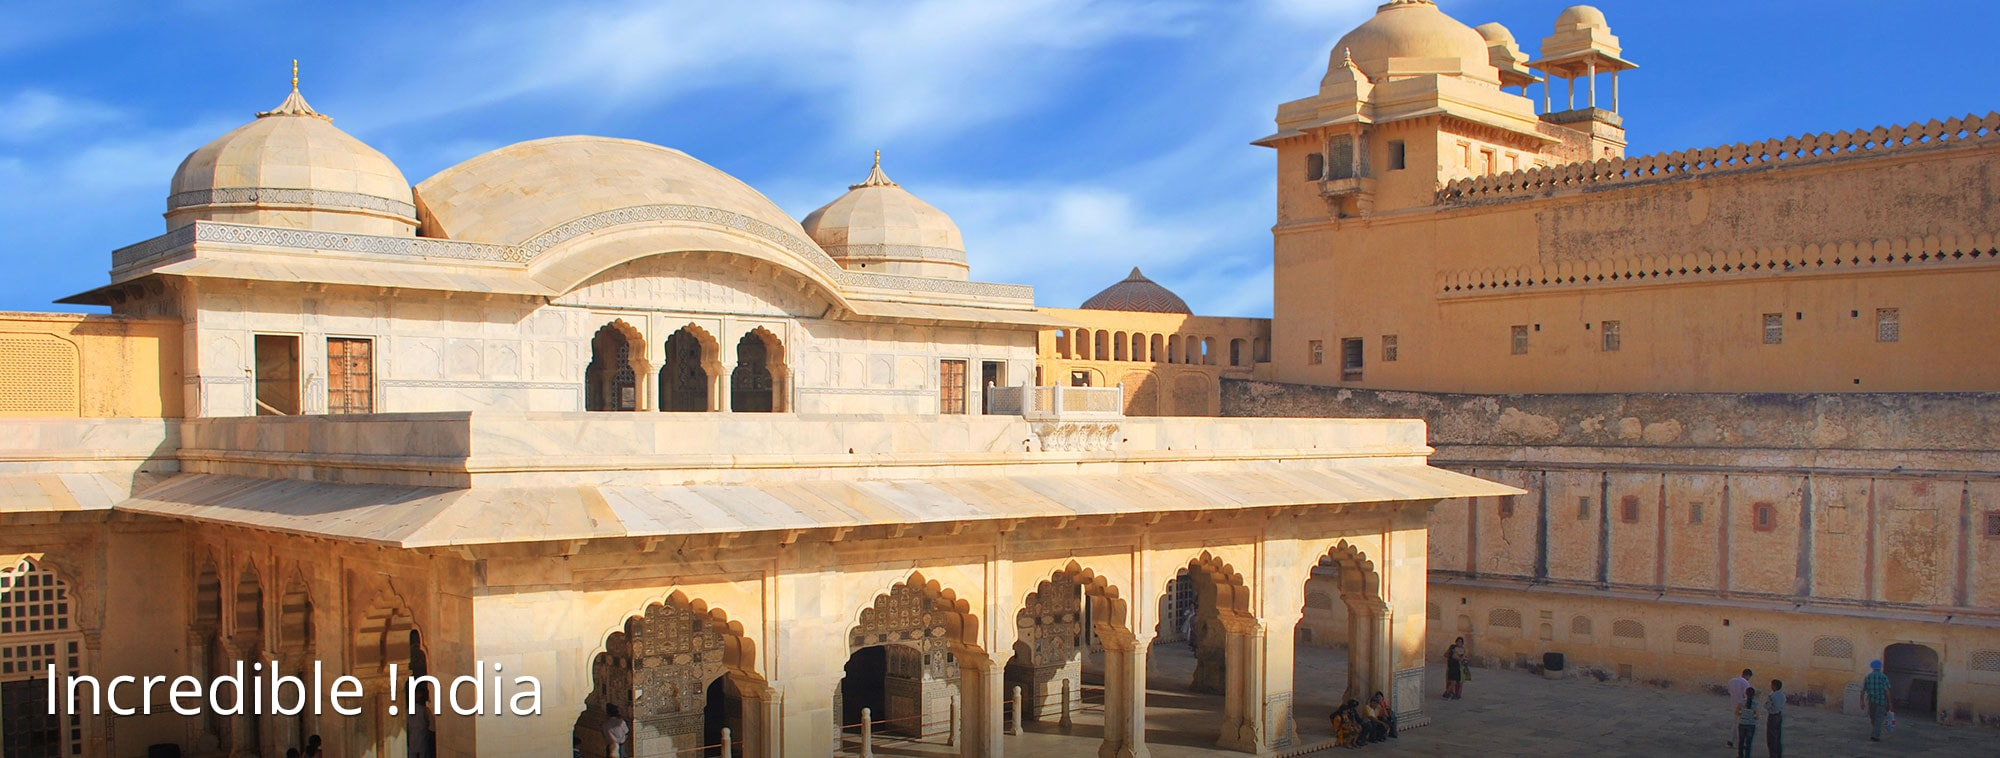 India Guided Tours Cheap India Vacation Packages To Delhi Agra Jaipur Varanasi